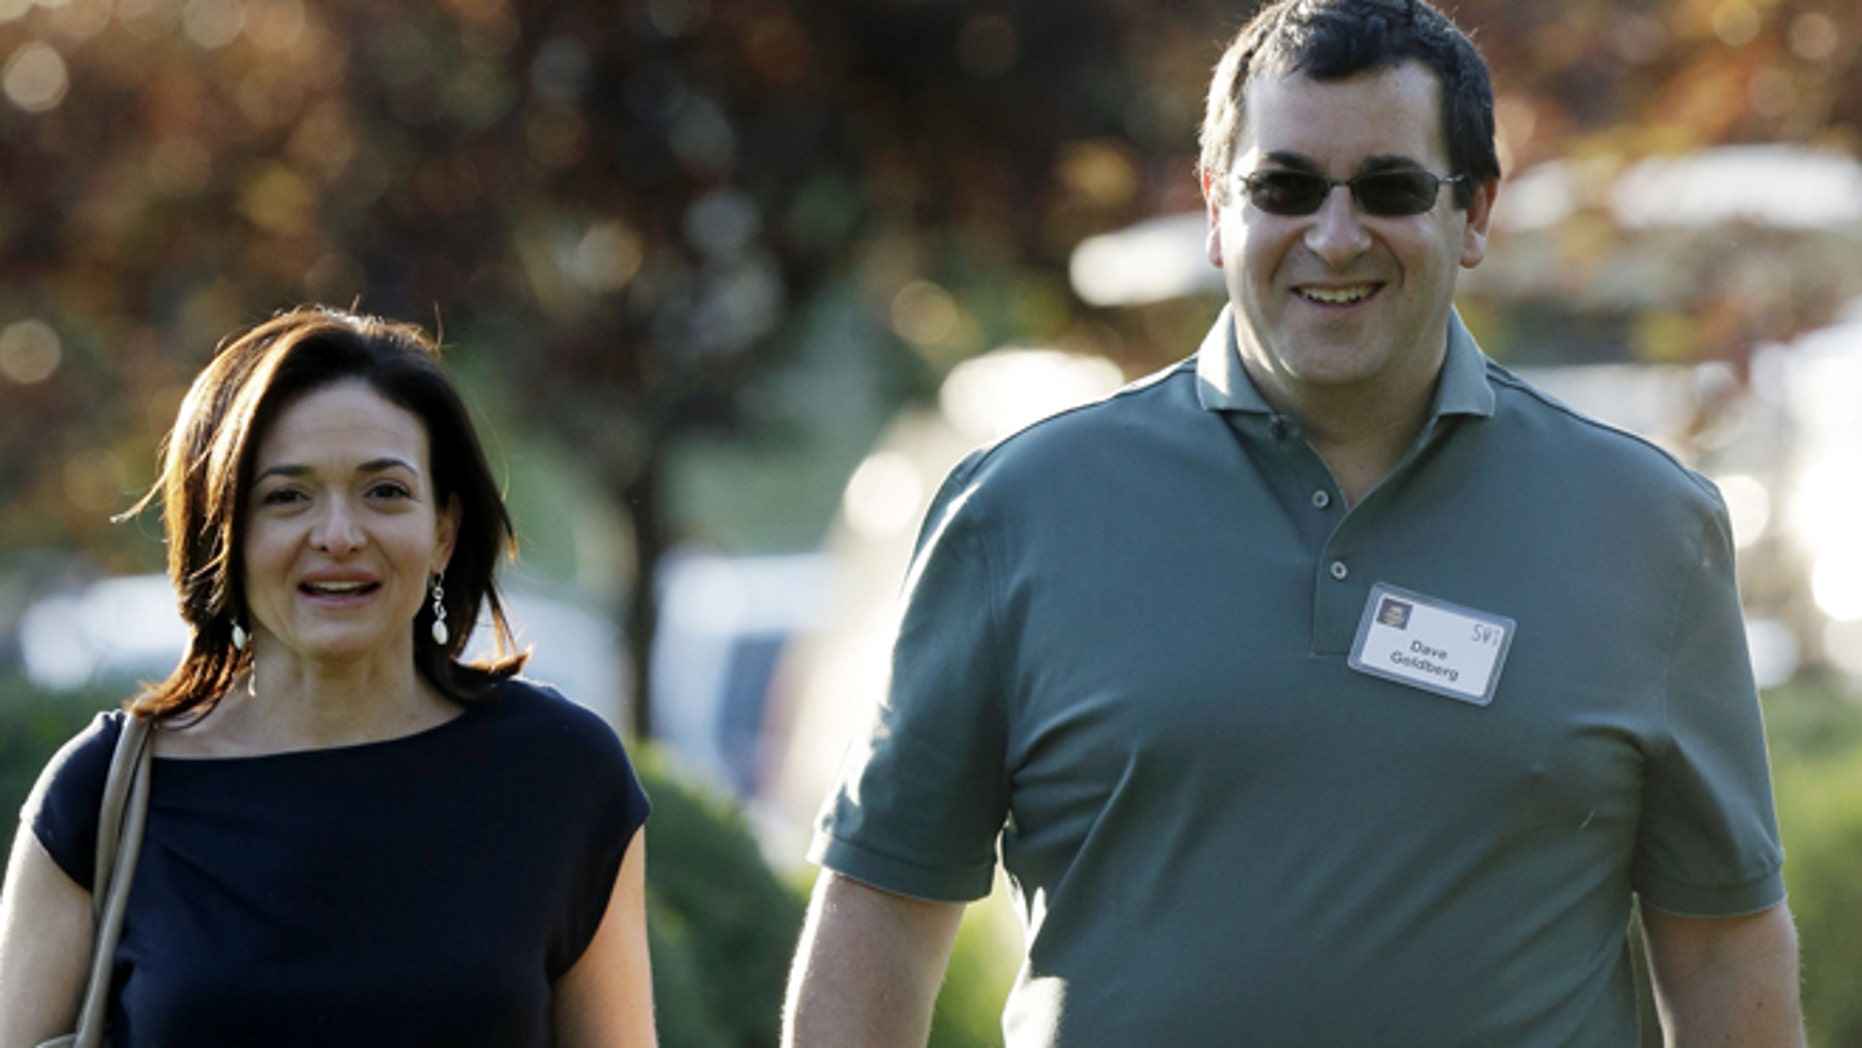 July 10, 2013: In this file photo, Sheryl Sandberg, COO of Facebook, left, and her husband David Goldberg, CEO of SurveyMonkey, walk to the morning session at the Allen & Company Sun Valley Conference in Sun Valley, Idaho.